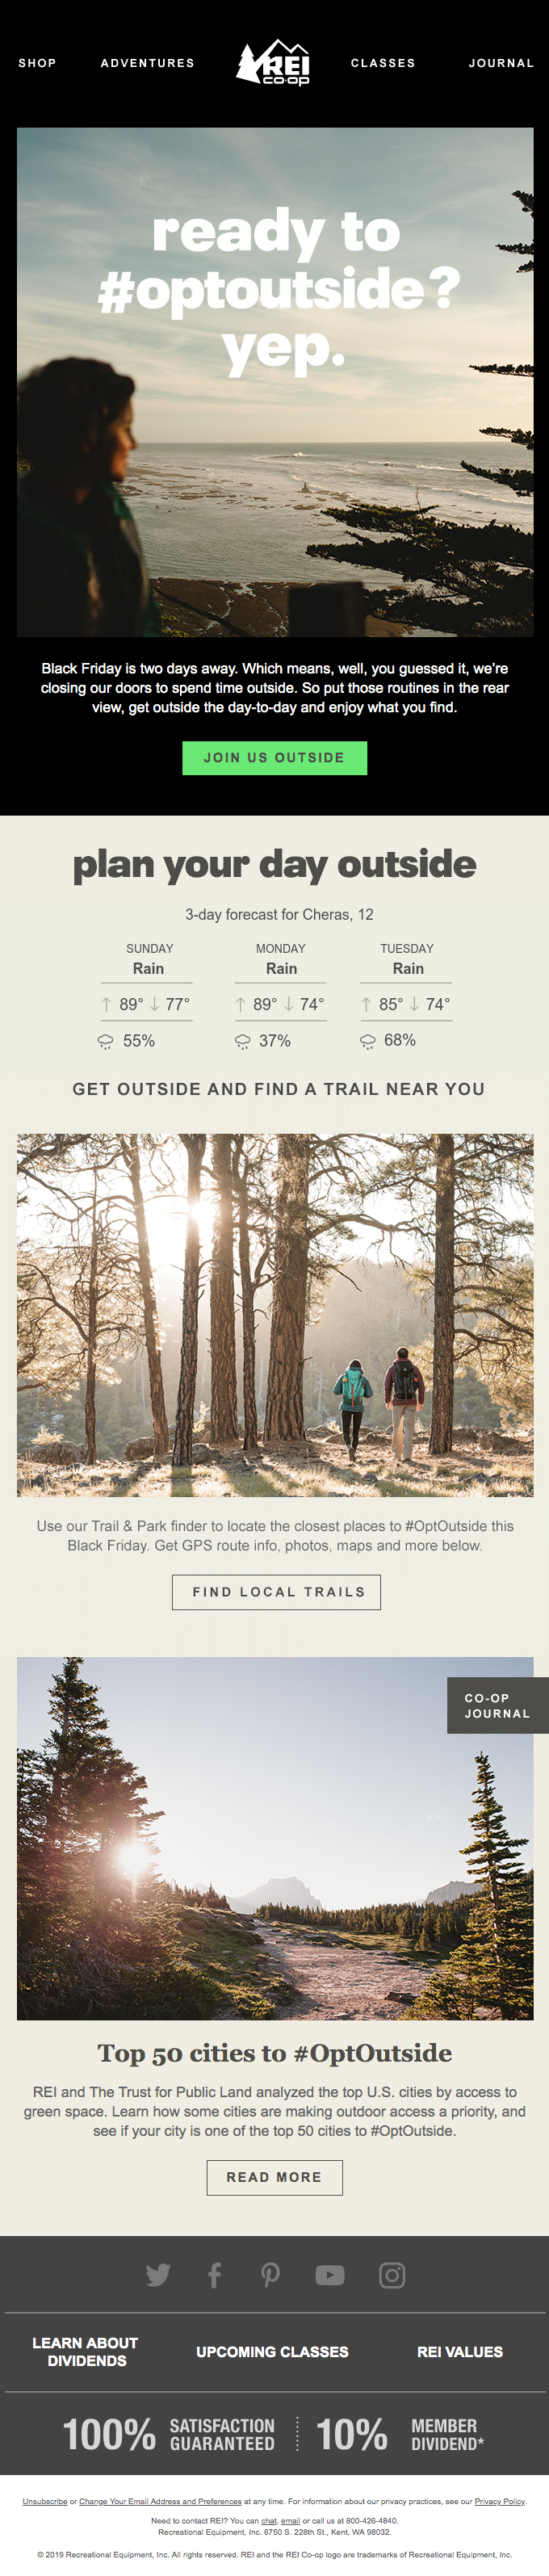 Switch Things Up on Black Friday and #OptOutside